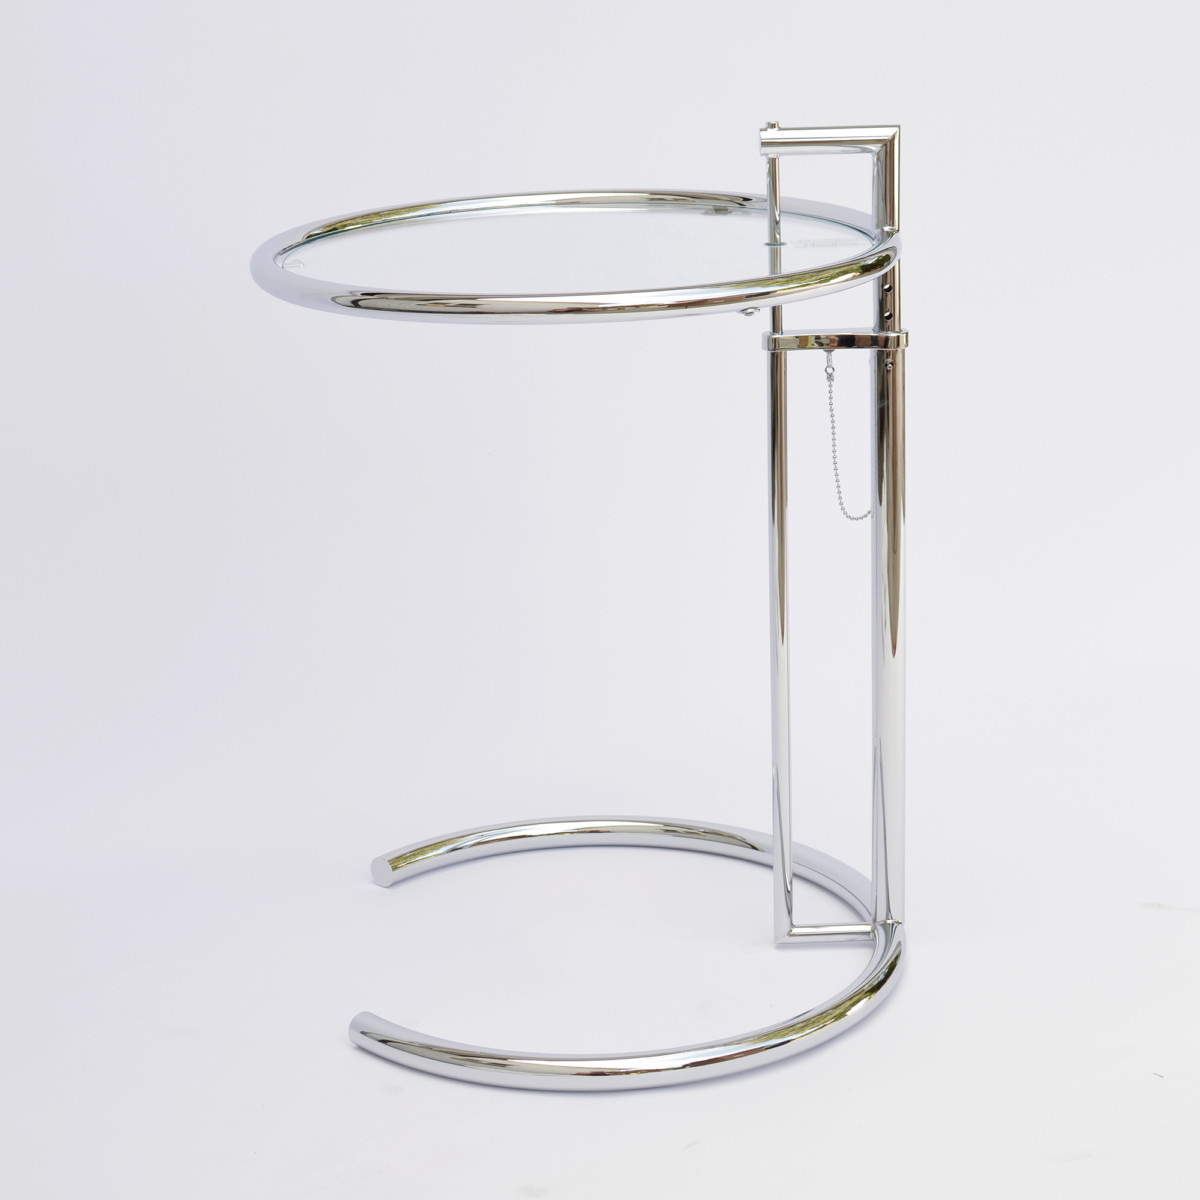 Original Classicon Eileen Gray Adustable Table E1027 For Only 649